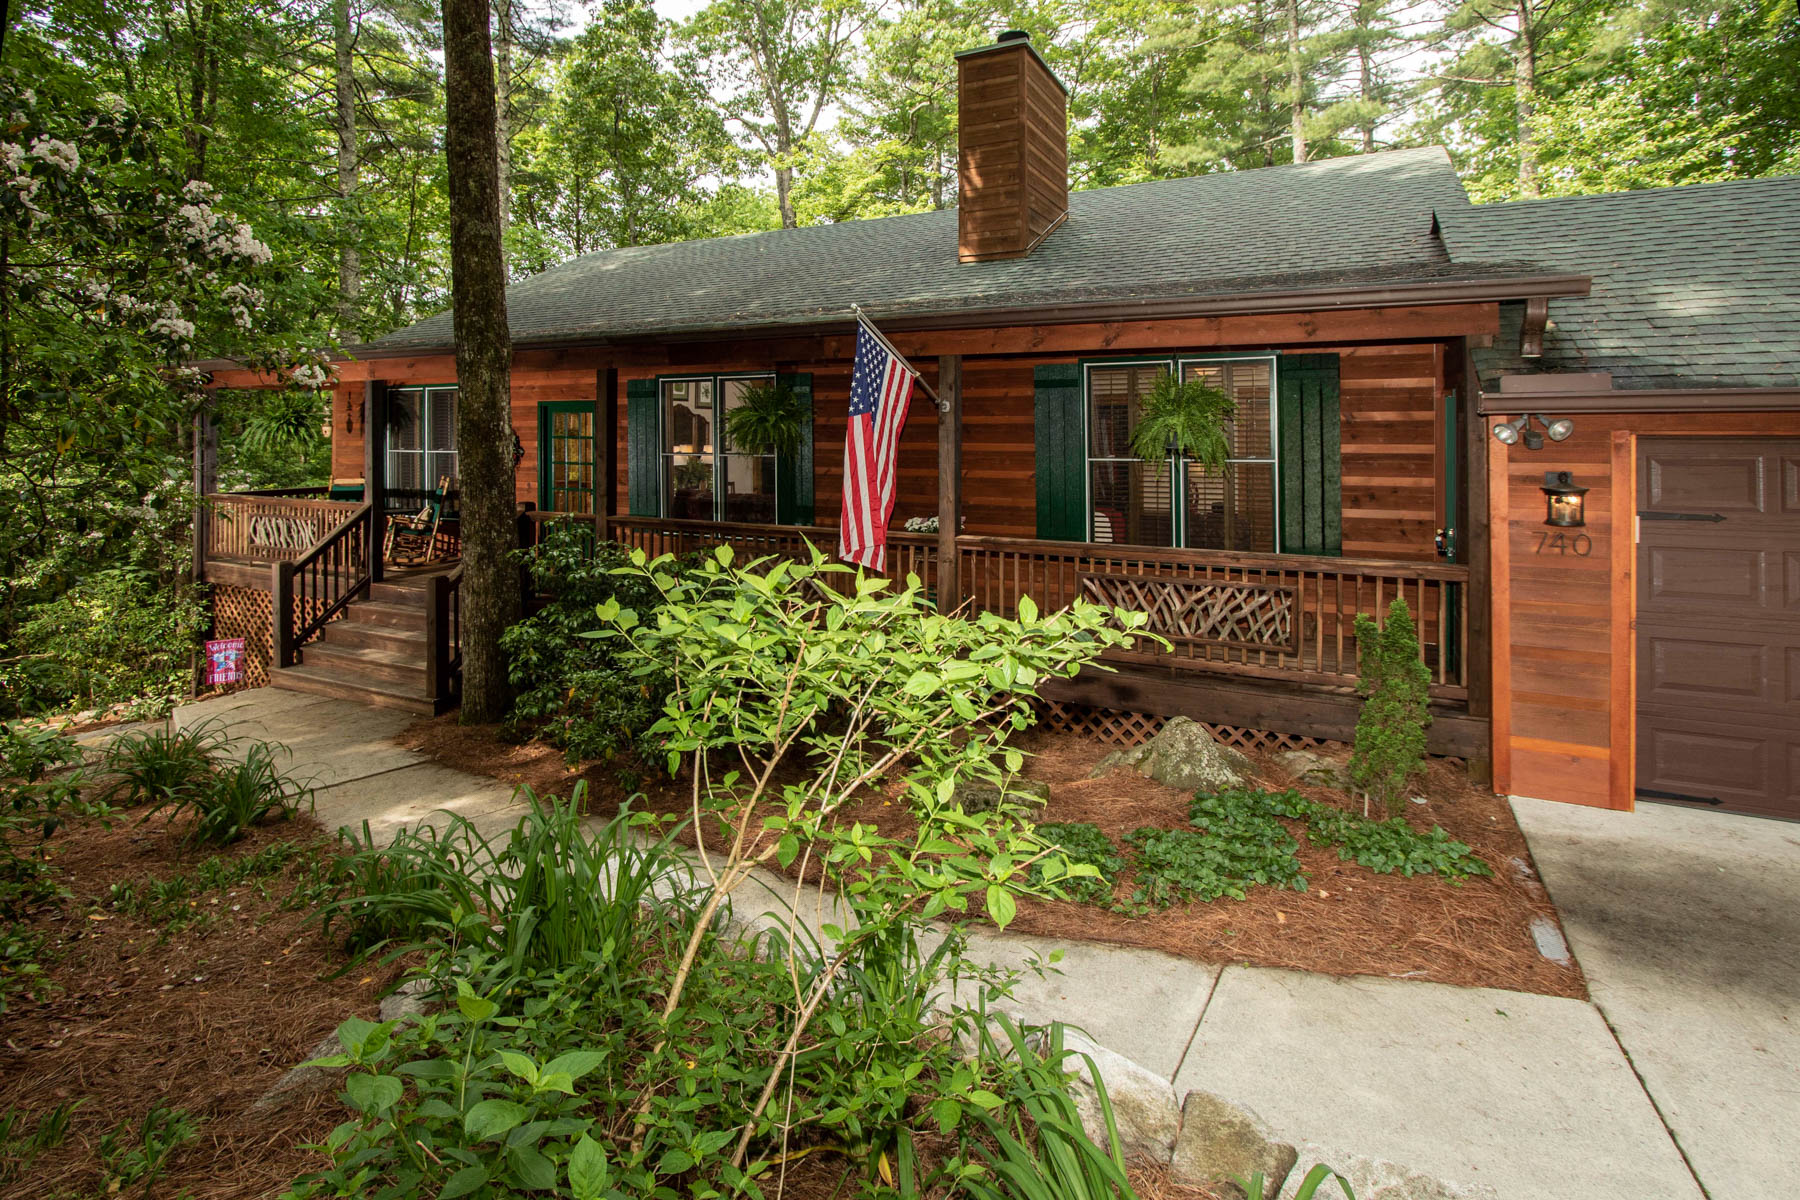 Single Family Homes for Active at 740 Blackberry Trail Sapphire, North Carolina 28774 United States